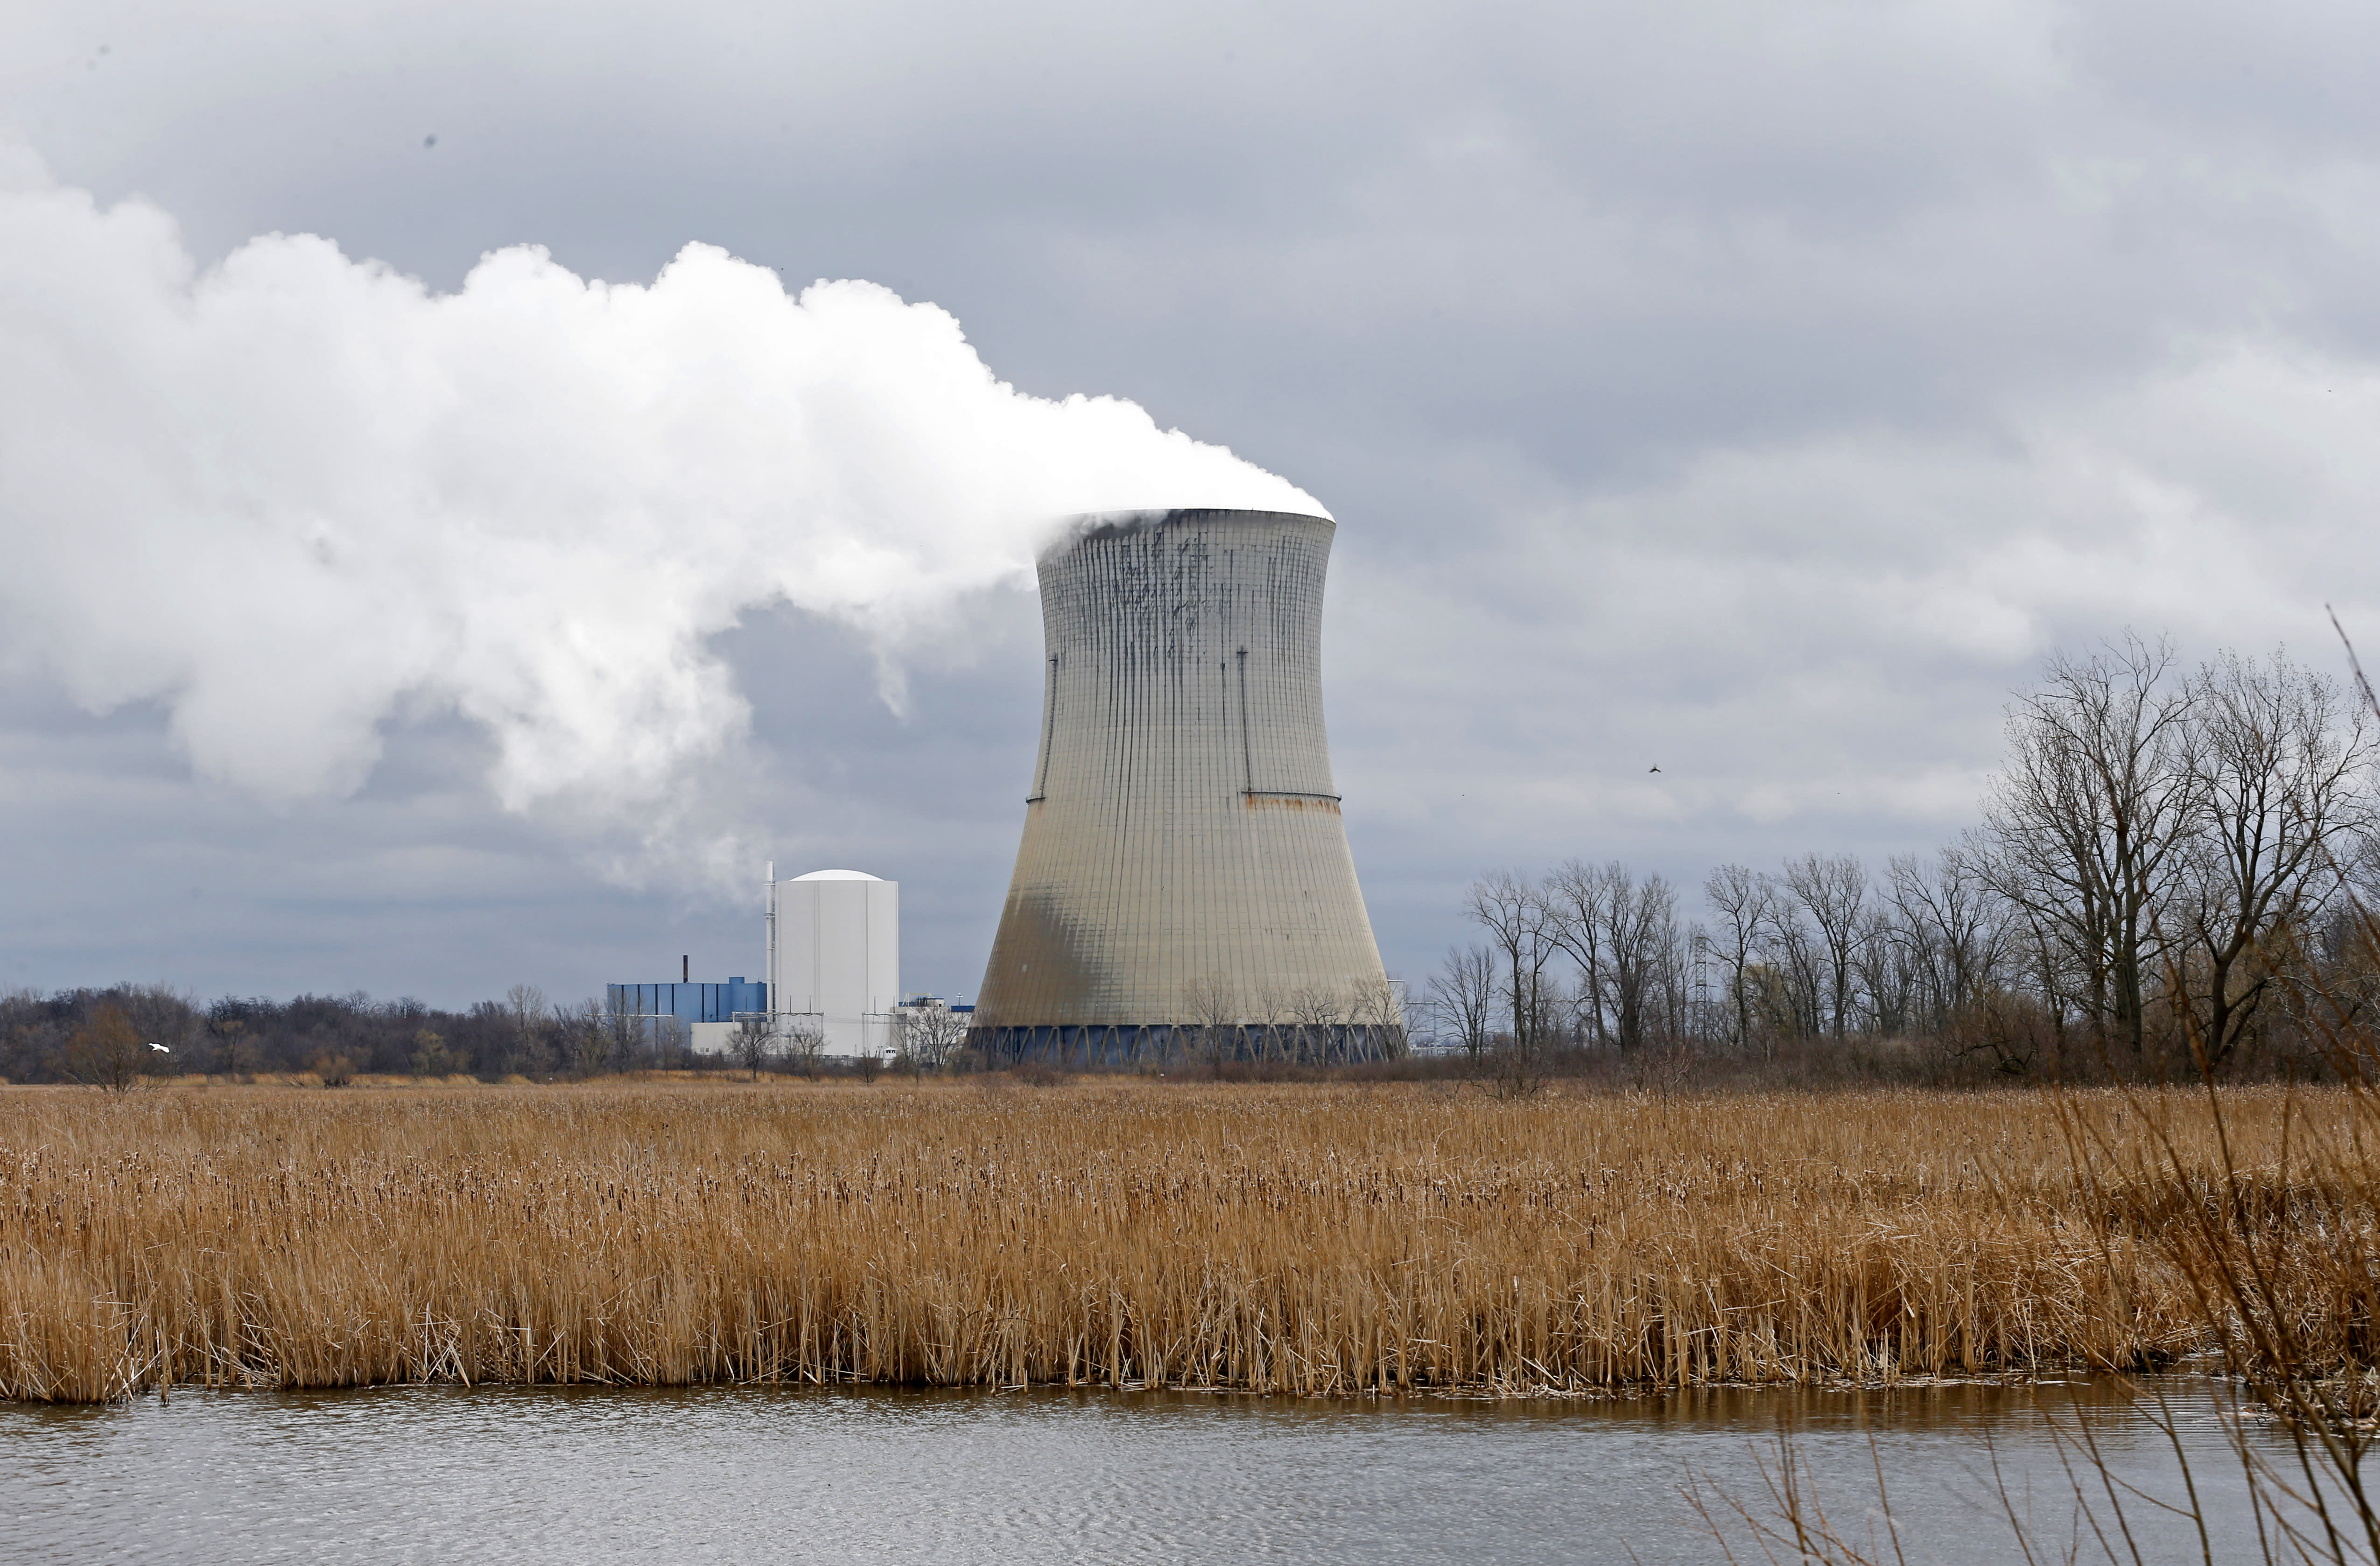 nuclear power pros About 13% of the world's electricity comes from nuclear power and more than 30 countries in the world, including the united states, russia, india and china, among others, have been relying on the efficiency of nuclear energy, resulting from the process known as nuclear fission.